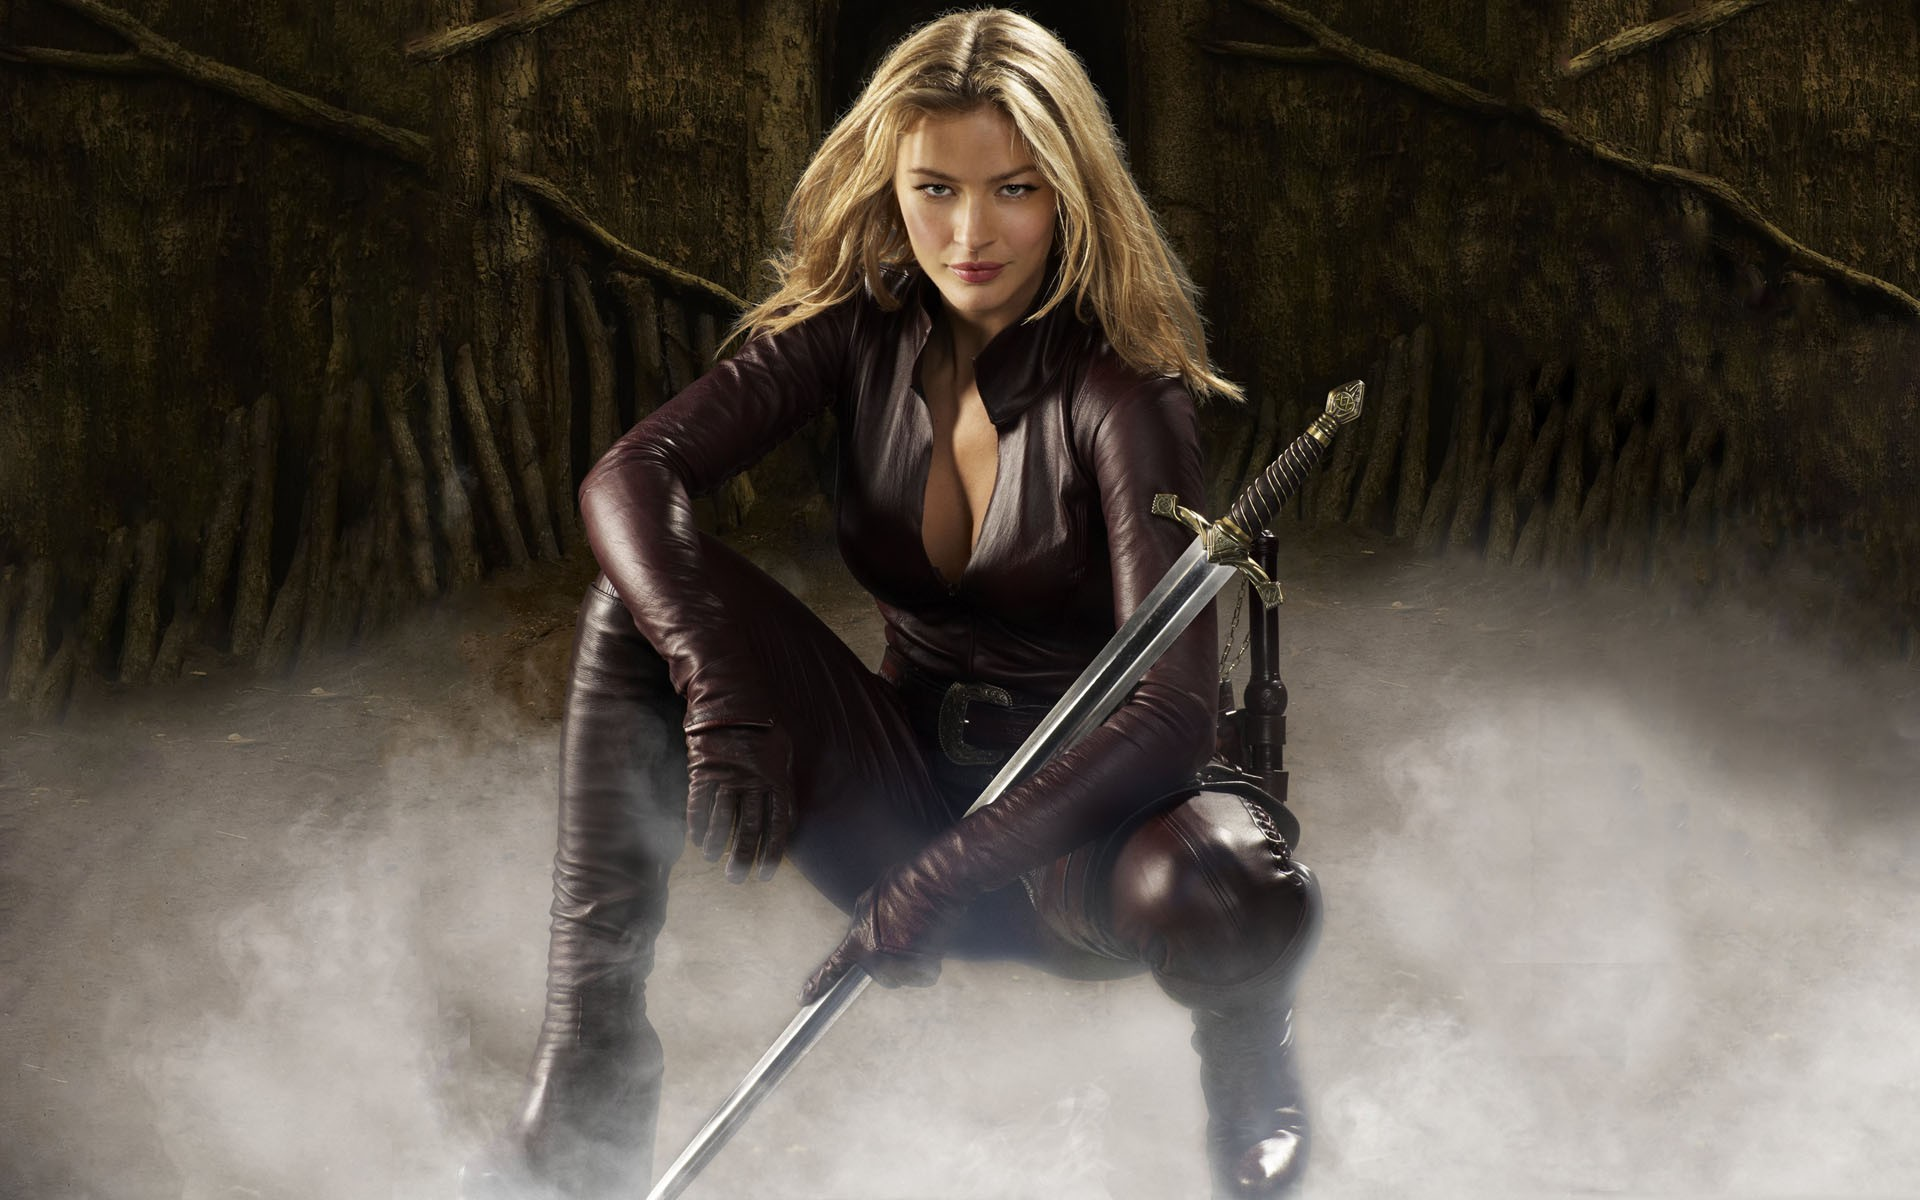 Tabrett Bethell photos from the movie The Legend of the Seeker